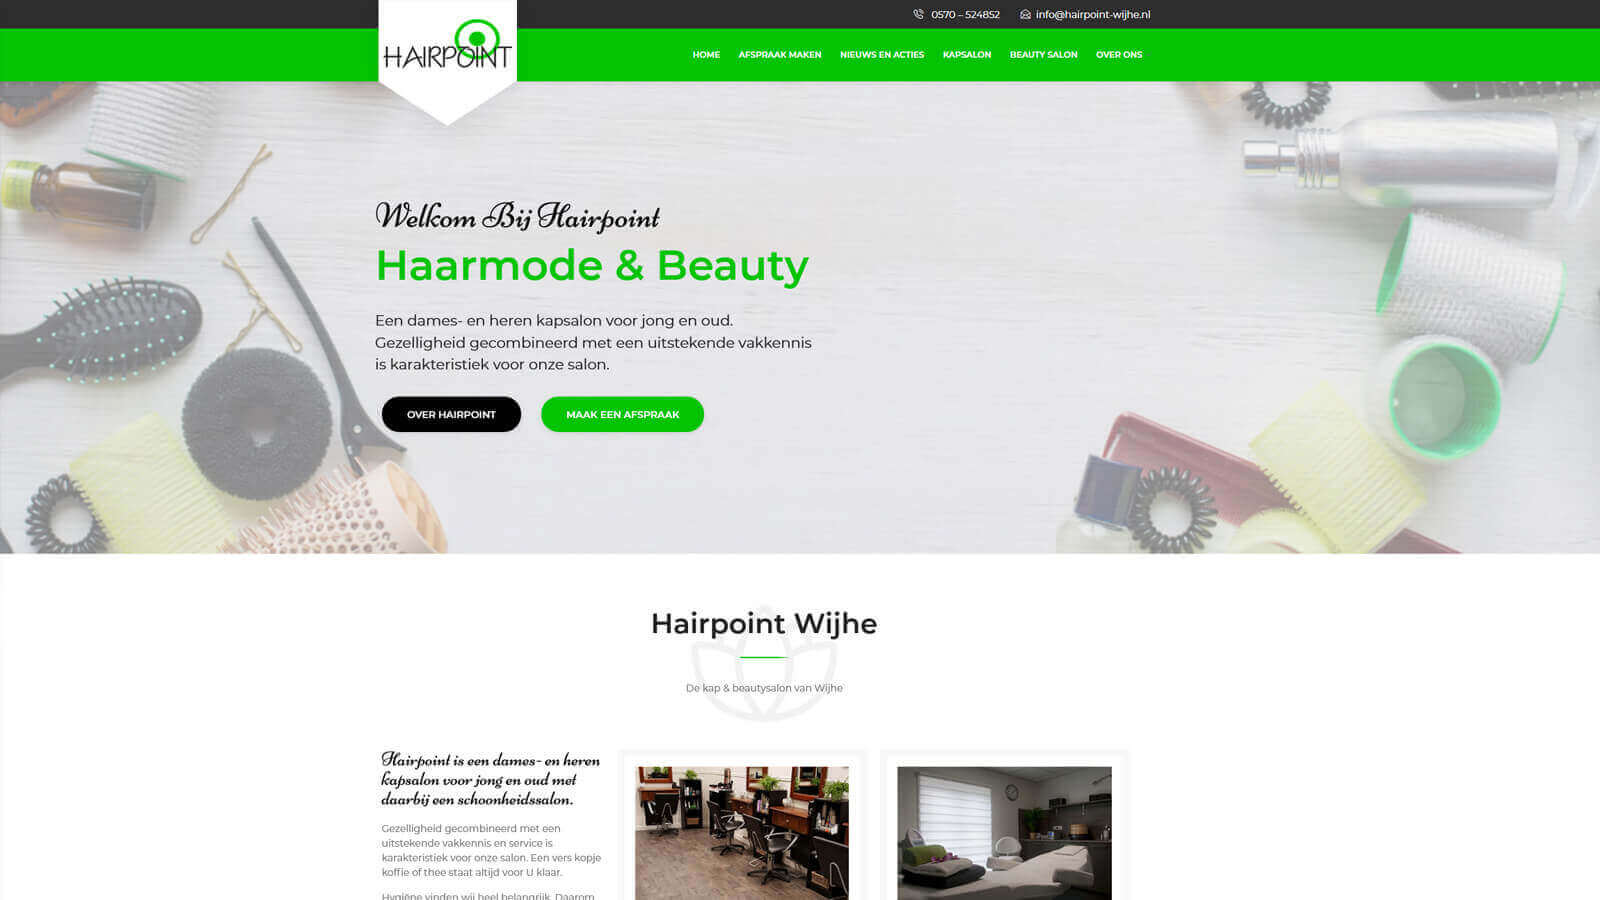 mitsn - hairpoint - Homepage